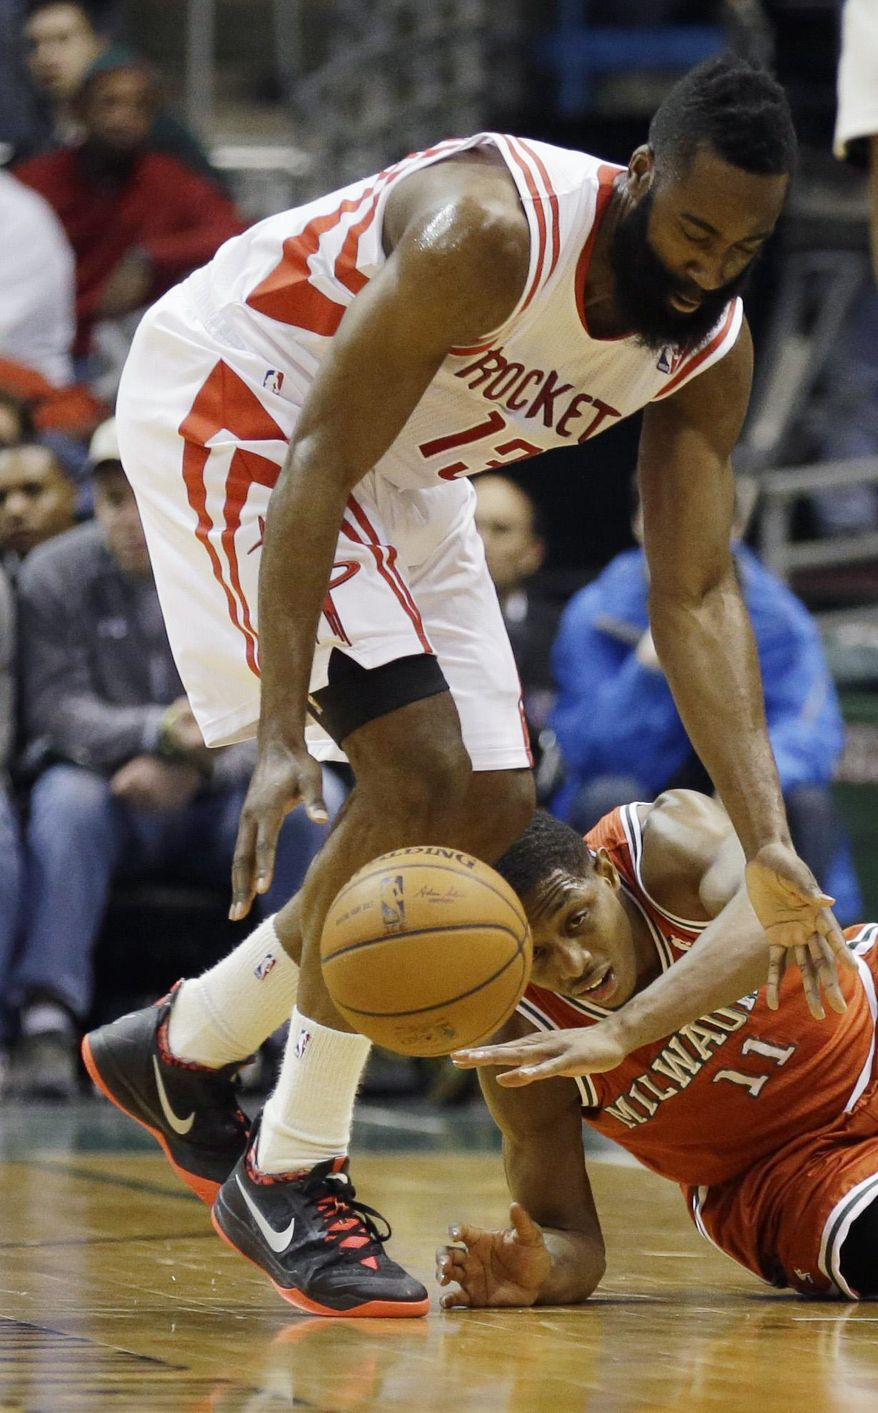 Houston Rockets' James Harden (13) steals the ball from Milwaukee Bucks' Brandon Knight (11) during the first half of an NBA basketball game, Saturday, Feb. 8, 2014, in Milwaukee. (AP Photo/Jeffrey Phelps)